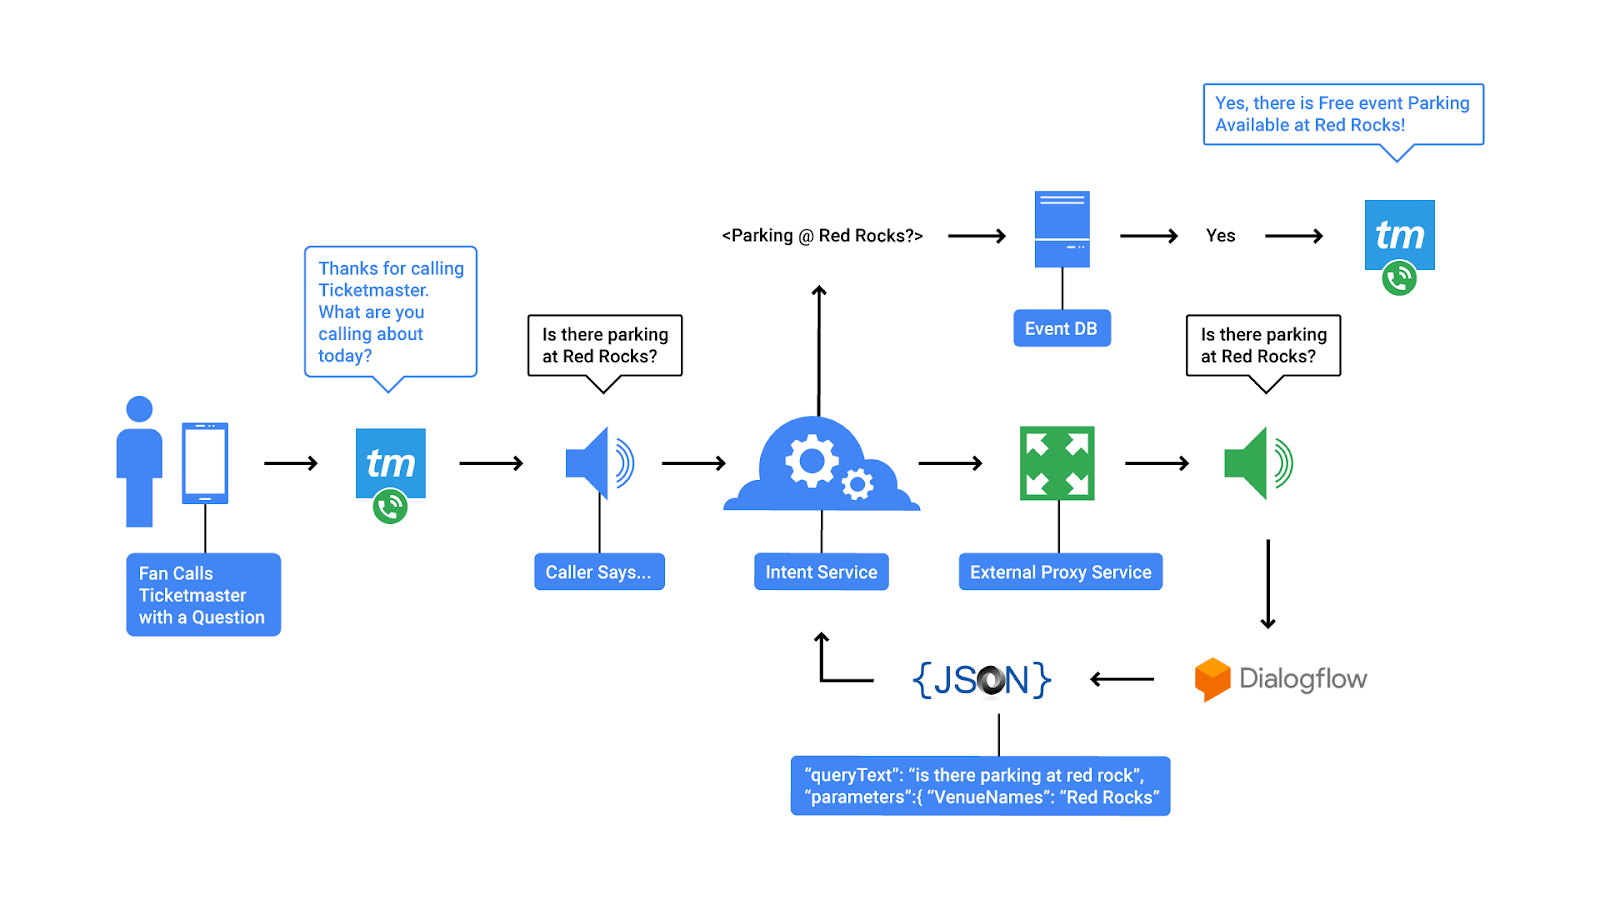 Dialogflow example